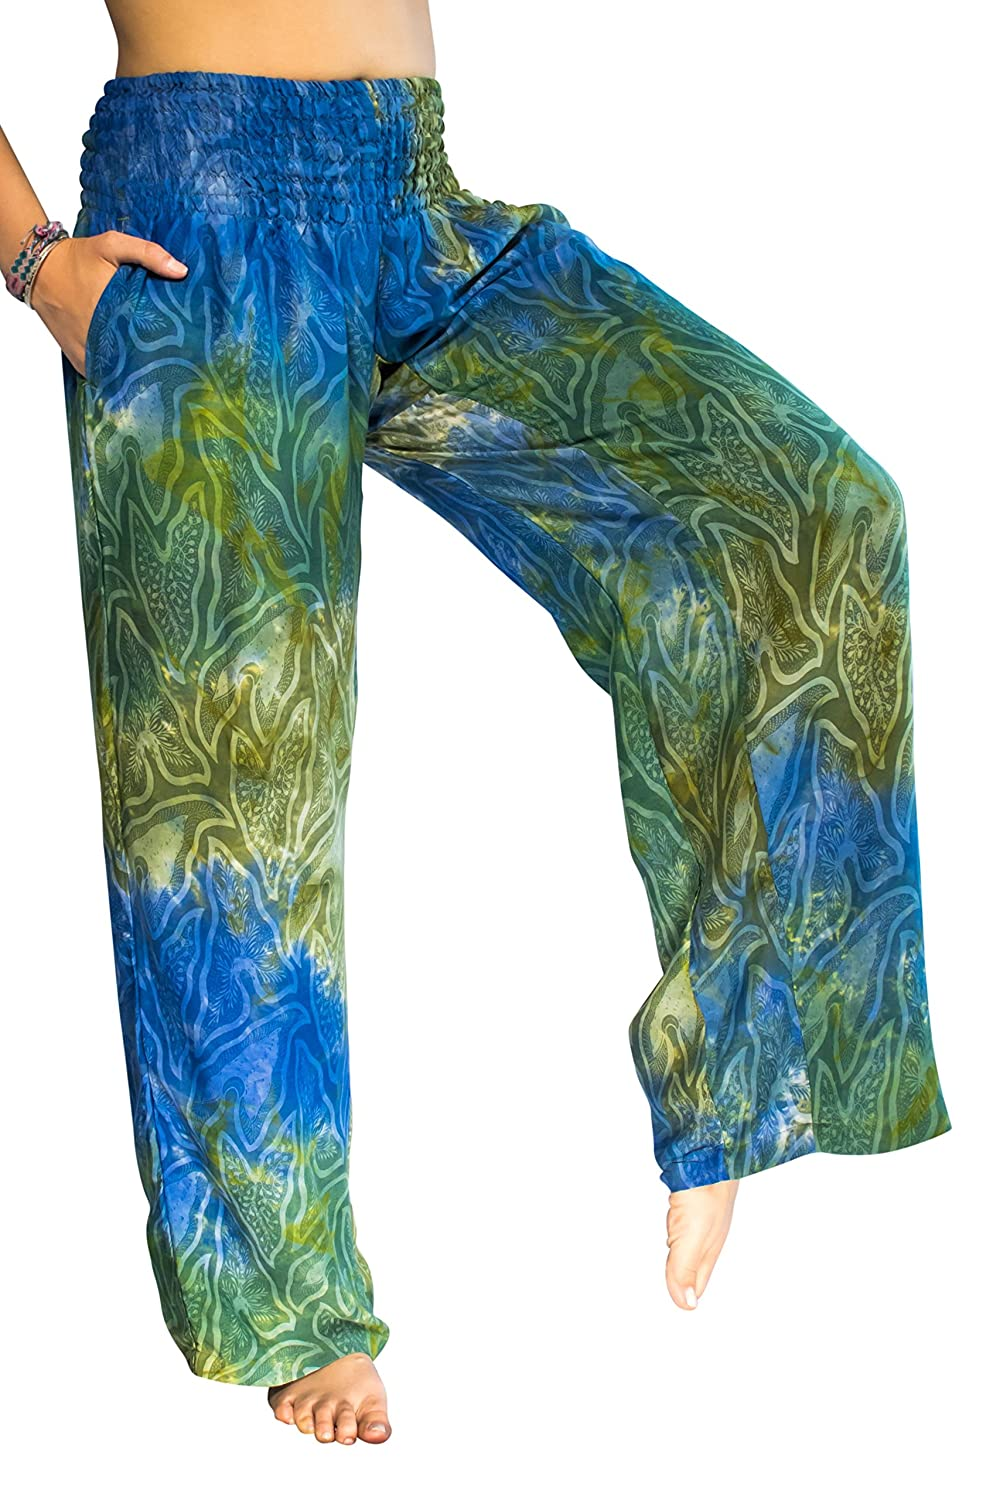 8052b9a7db Chinabrands.com: Dropshipping & Wholesale cheap PIYOGA Womens Boutique  Lounge and Yoga Pants, Elastic Waistb online.